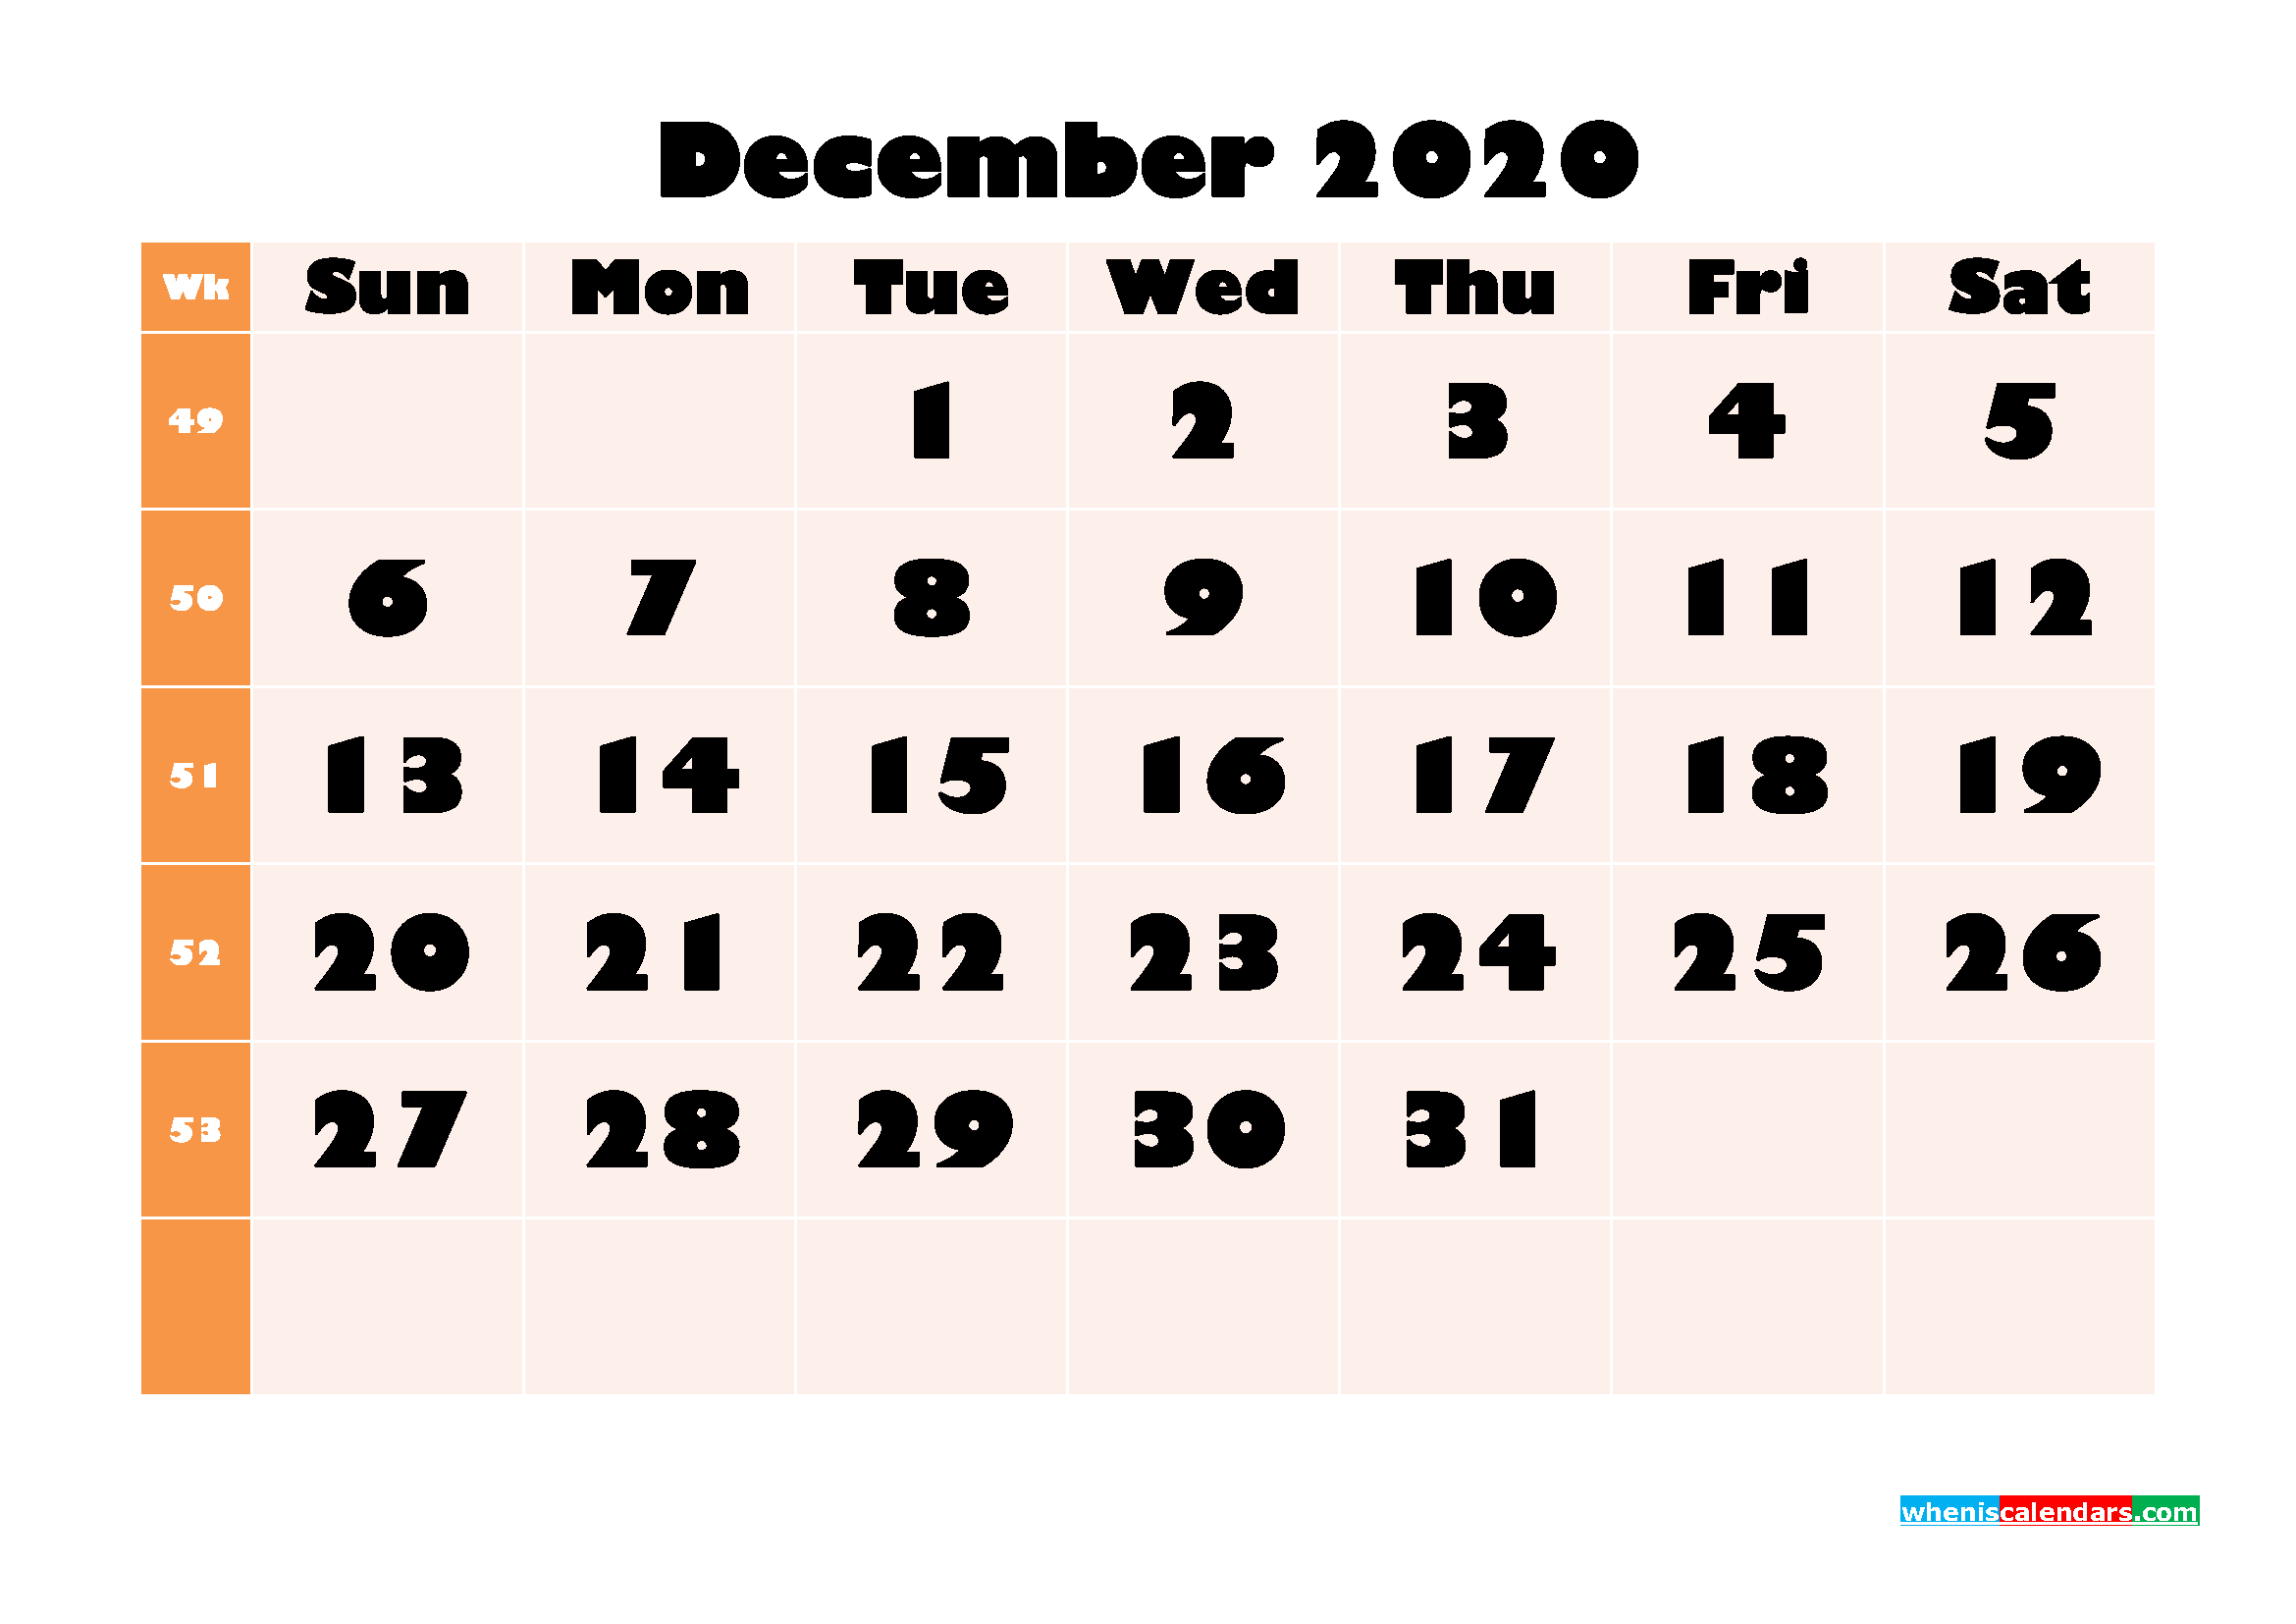 Monthly Printable Calendar 2020 December with Week Numbers